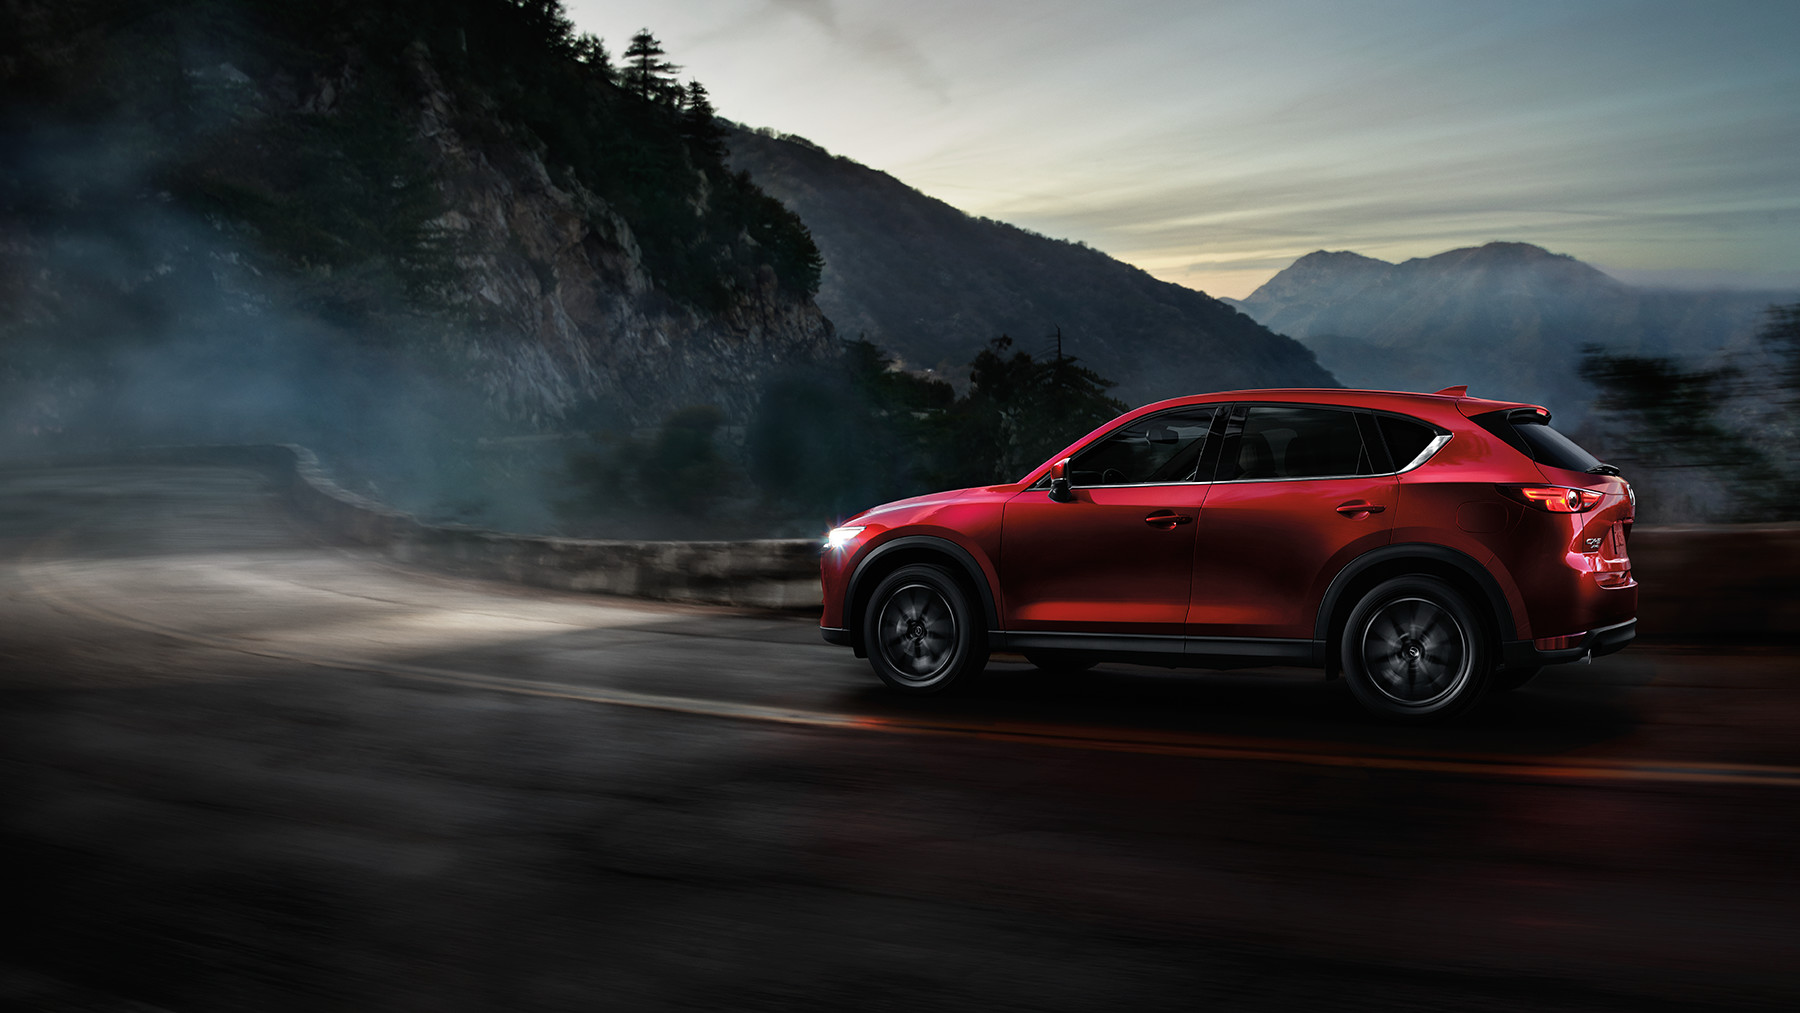 1800x1013 - Mazda CX-5 Wallpapers 23